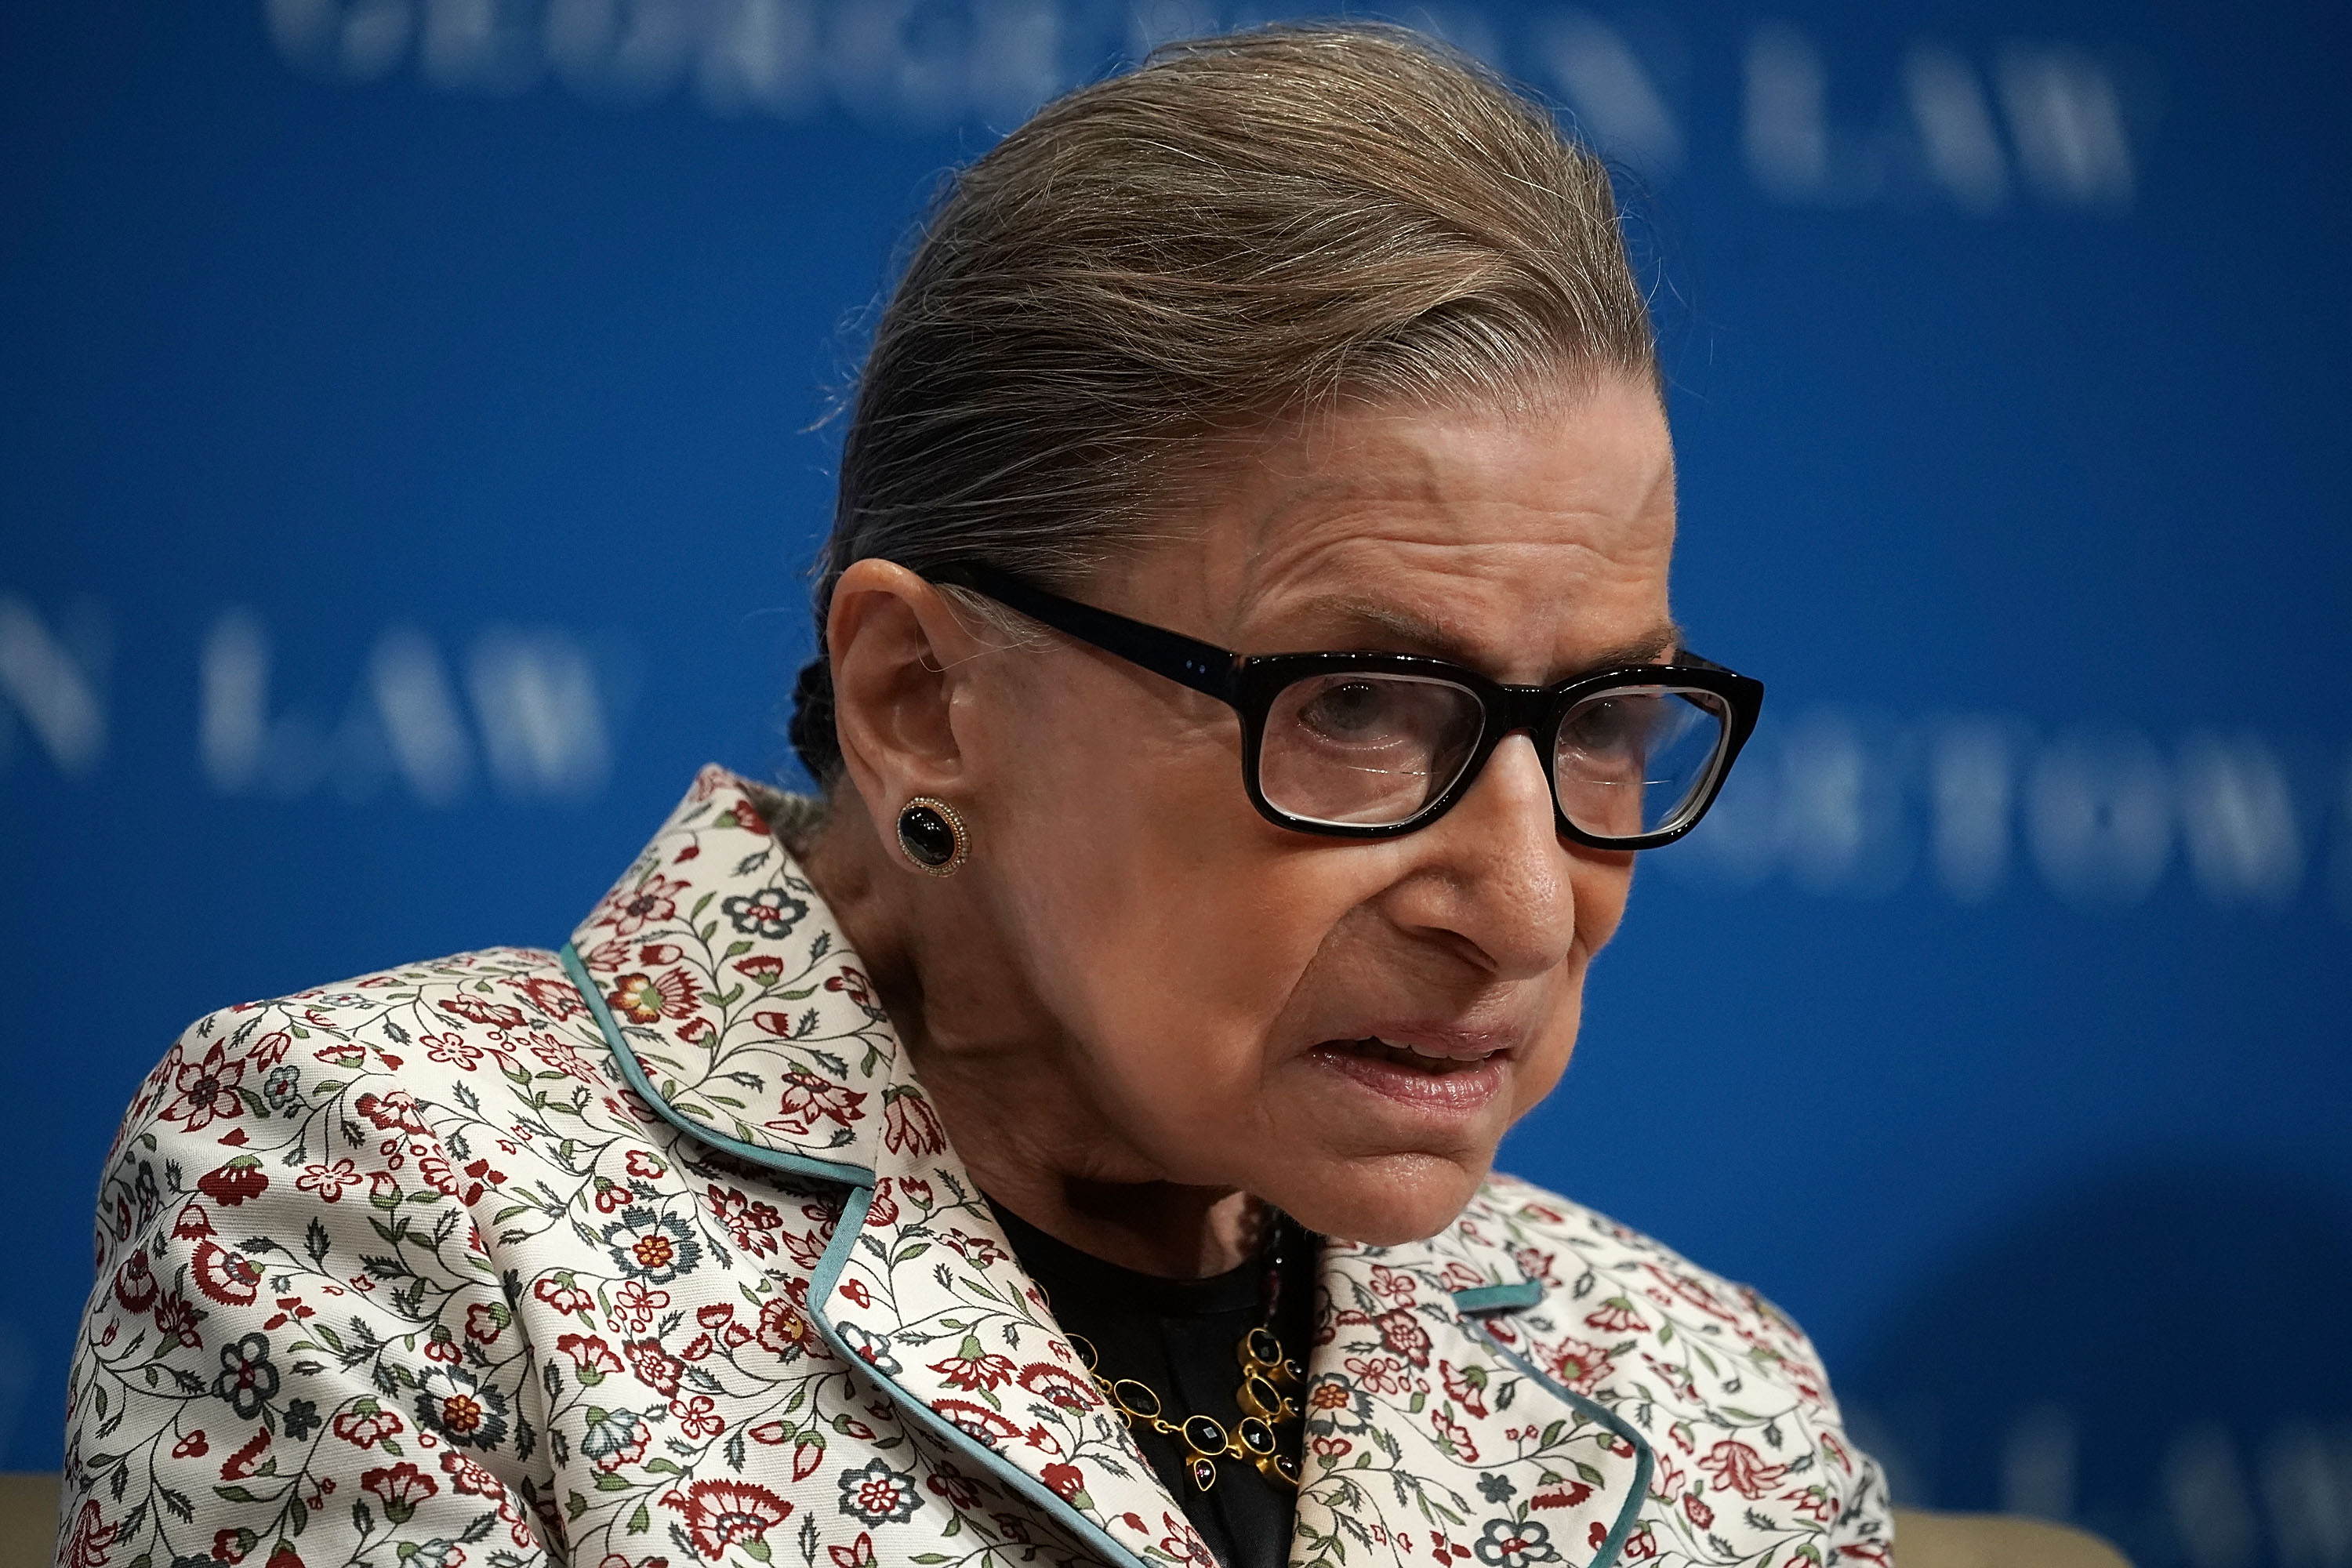 Justice Ruth Bader Ginsburg underwent cancer treatment for the second time in a year